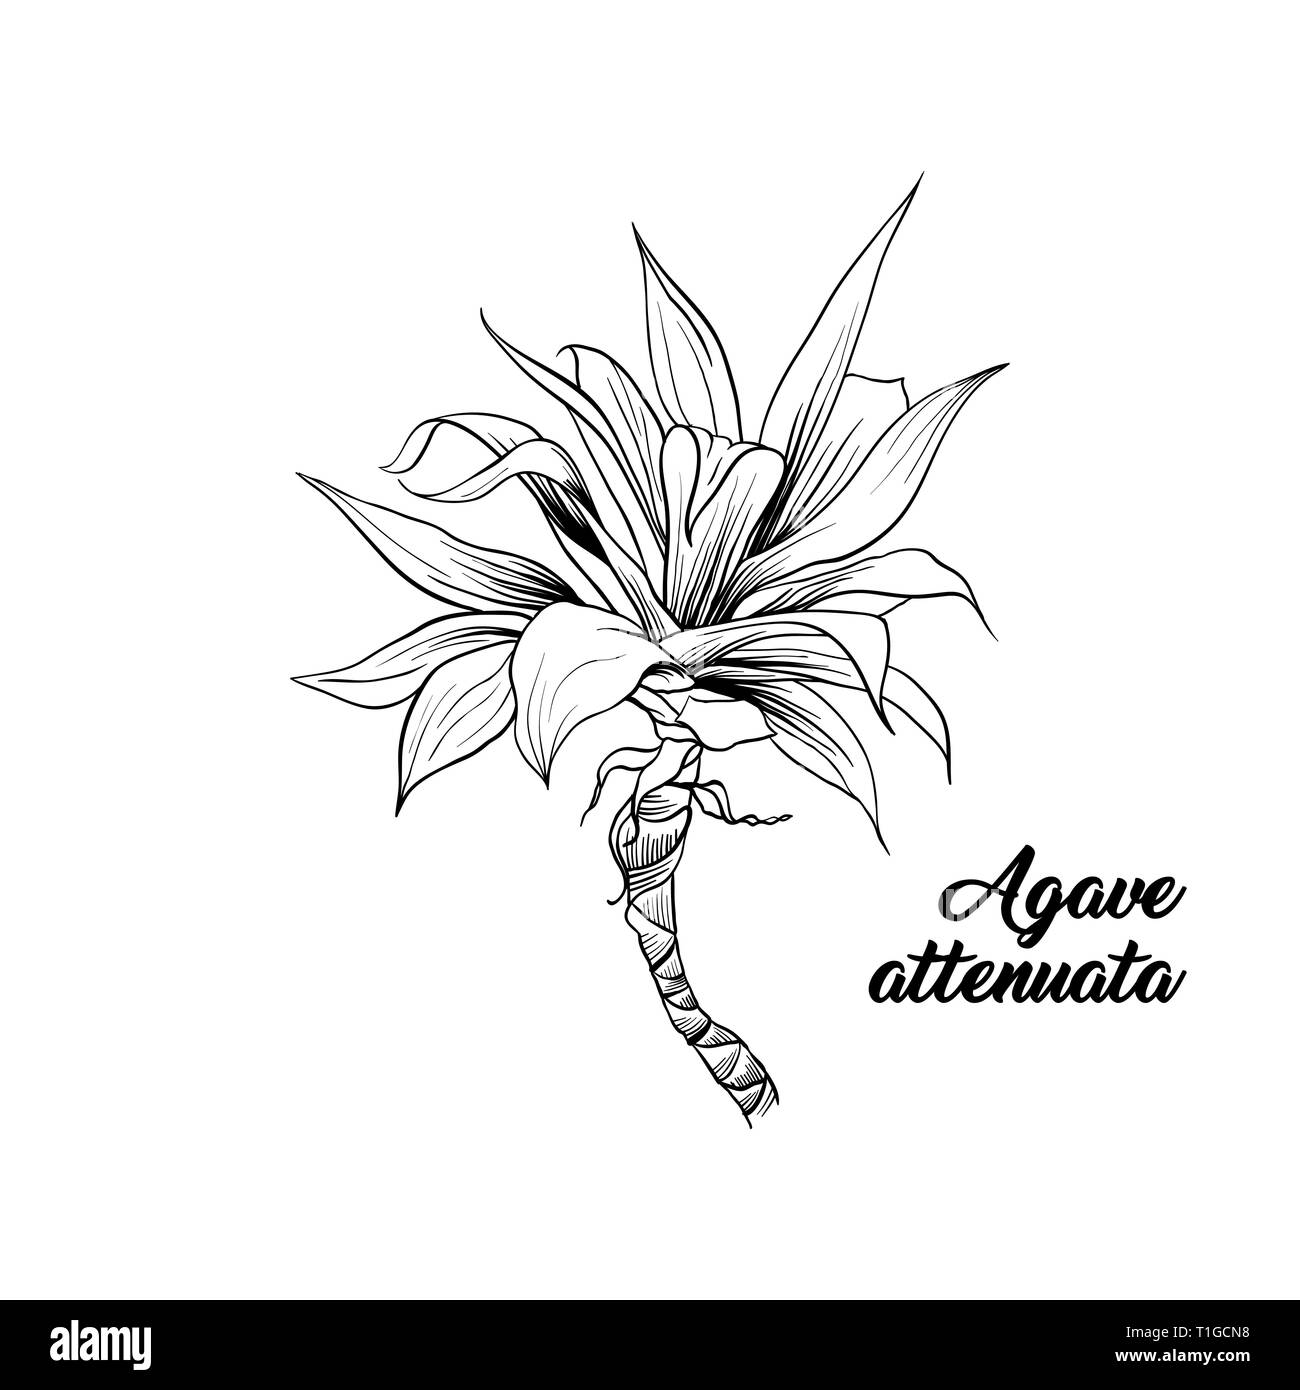 Agave Attenuata Palm Tree Hand Drawn Illustration Palm Leaves Ink Pen Outline Sketch Tropical Plant Freehand Realistic Engraving Greeting Card Isolated Monochrome Design Element Stock Vector Image Art Alamy Then i overlaid the drawings to create this modern illustration. https www alamy com agave attenuata palm tree hand drawn illustration palm leaves ink pen outline sketch tropical plant freehand realistic engraving greeting card isolated monochrome design element image241921044 html